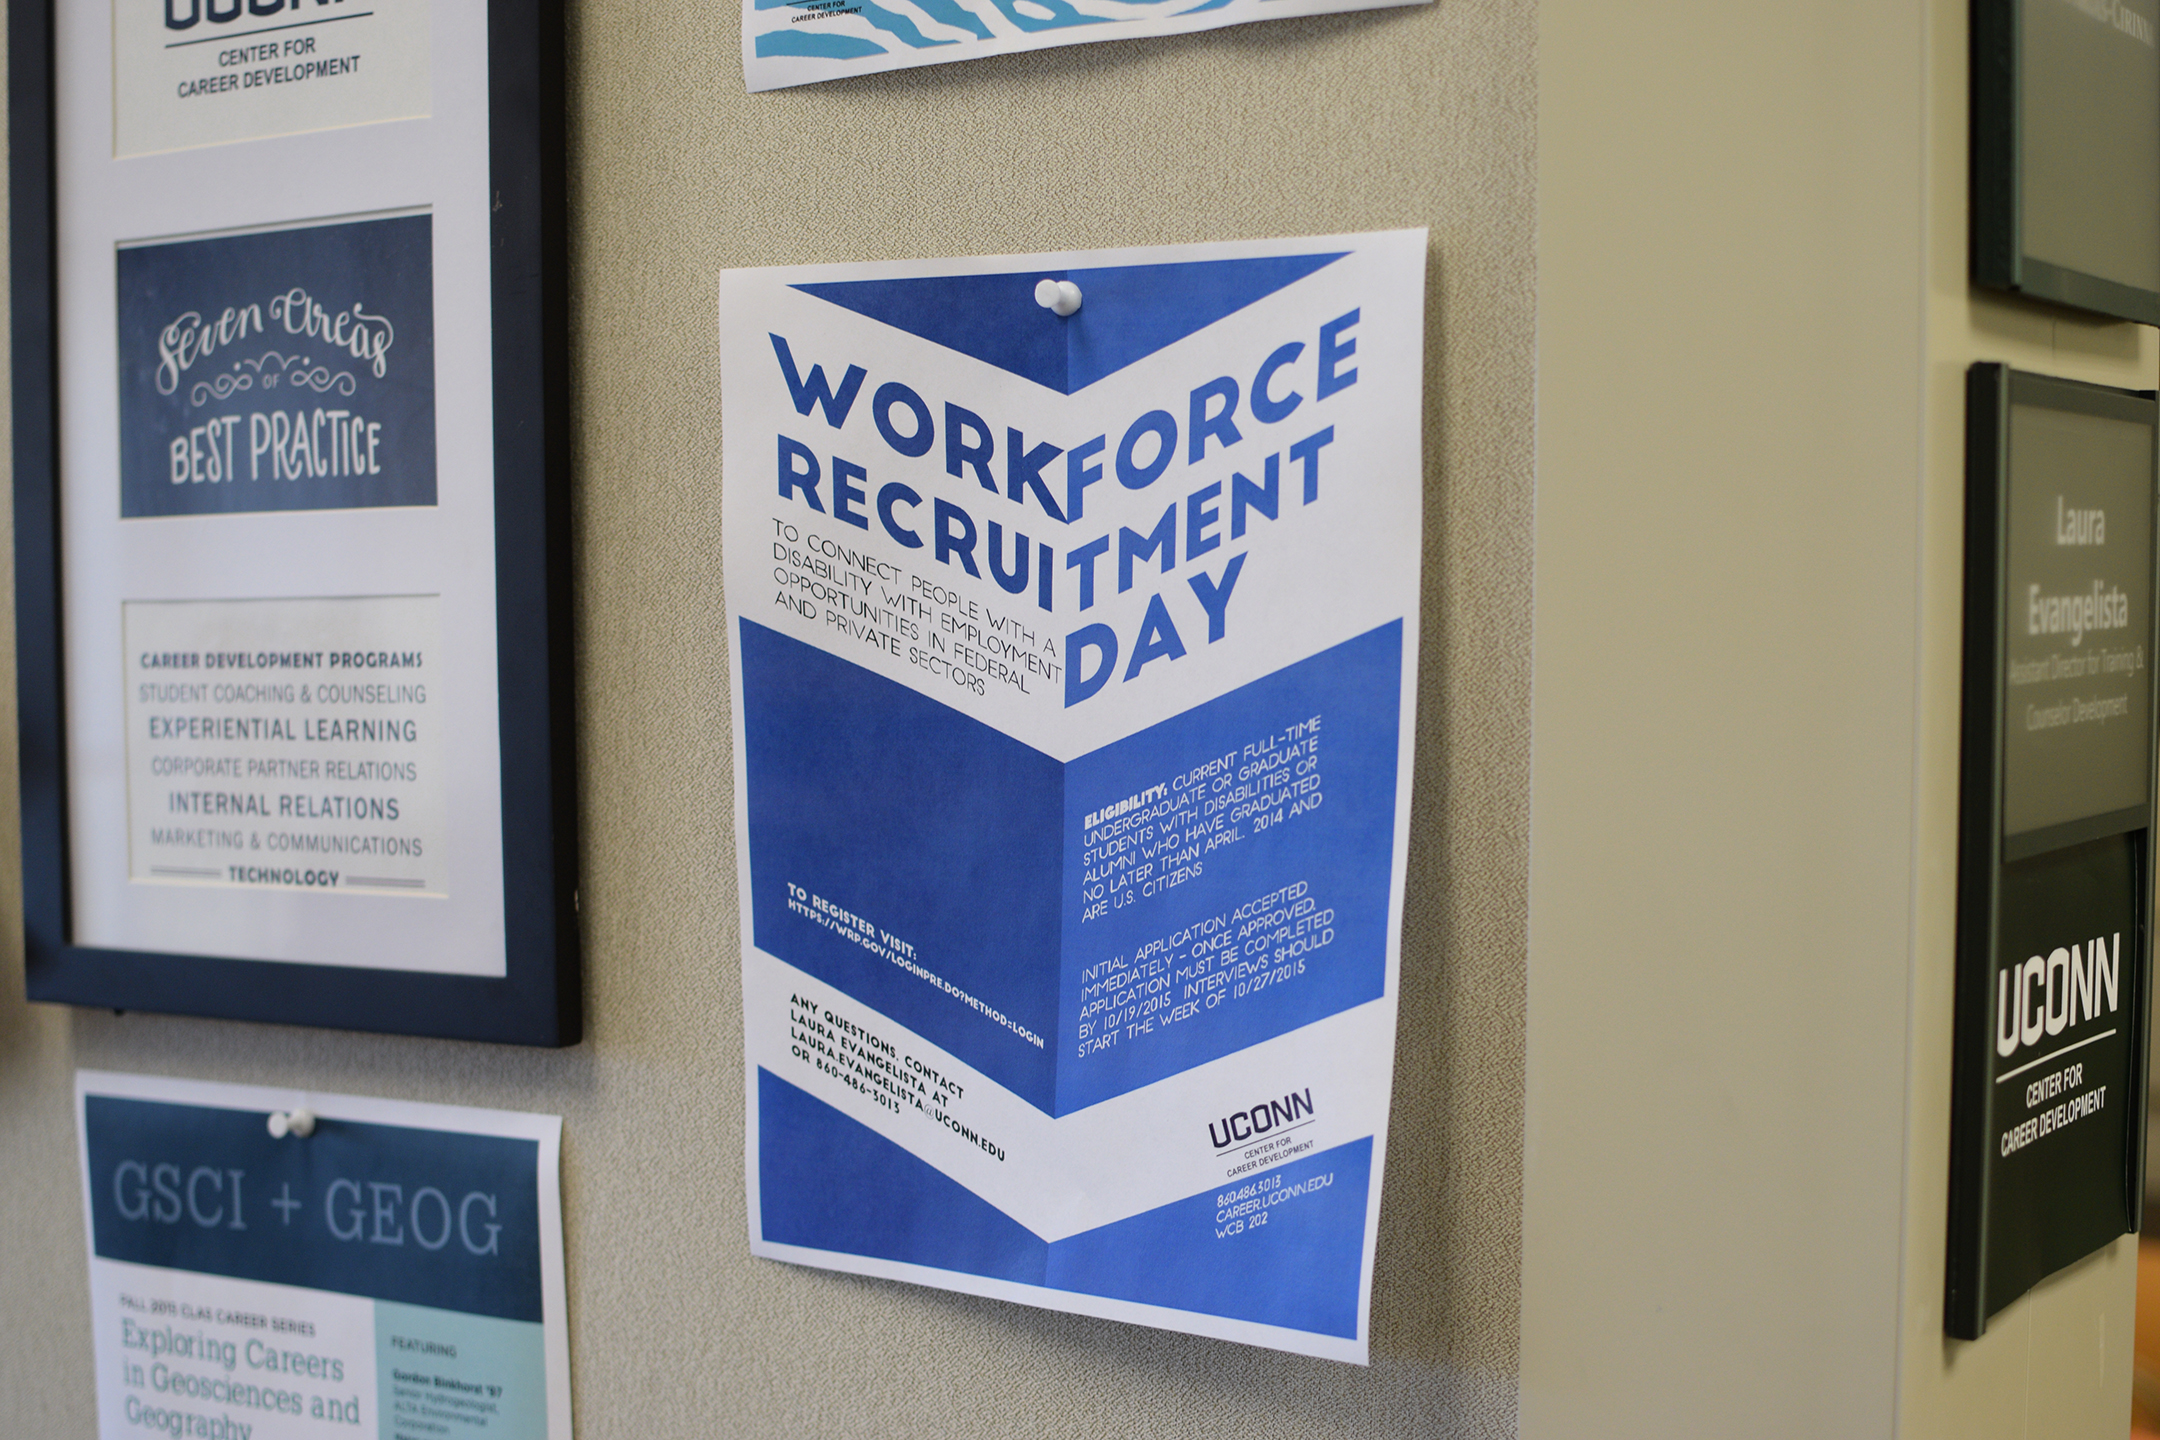 In this photo, a flyer is seen for the Workforce Recruitment Day event outside of the UConn Center for Career Development in the Wilbur Cross Building in Storrs, Connecticut on Monday, Oct. 19, 2015. (Grant Zitomer/The Daily Campus)